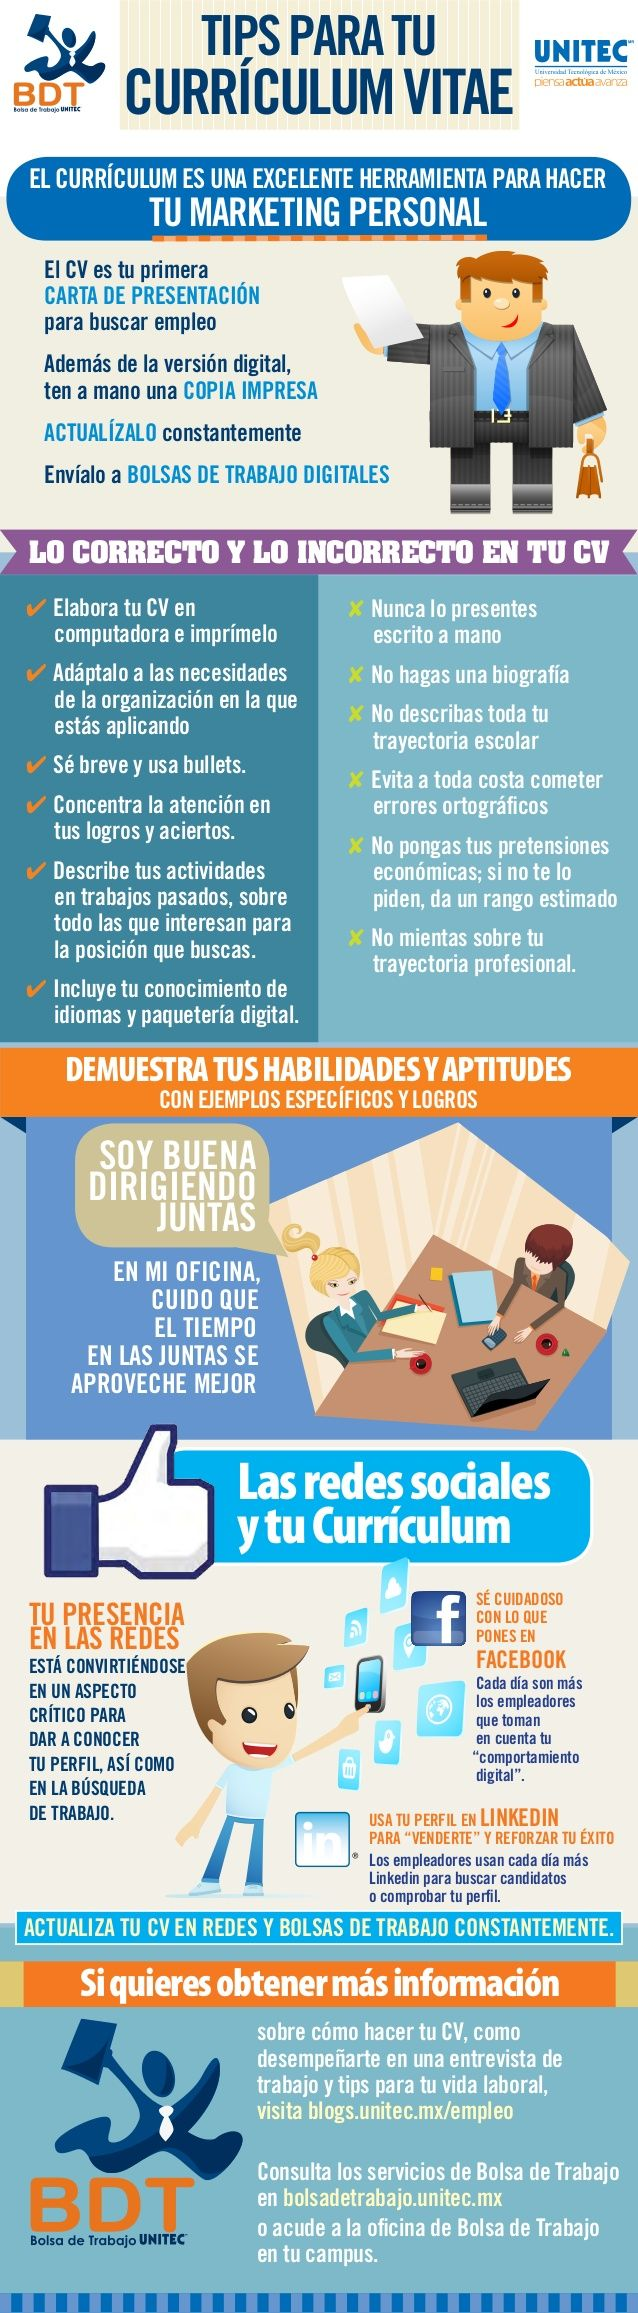 Consejos y tips para tu Currículum y tu marketing personal. #egresados #estudiantes #umayor